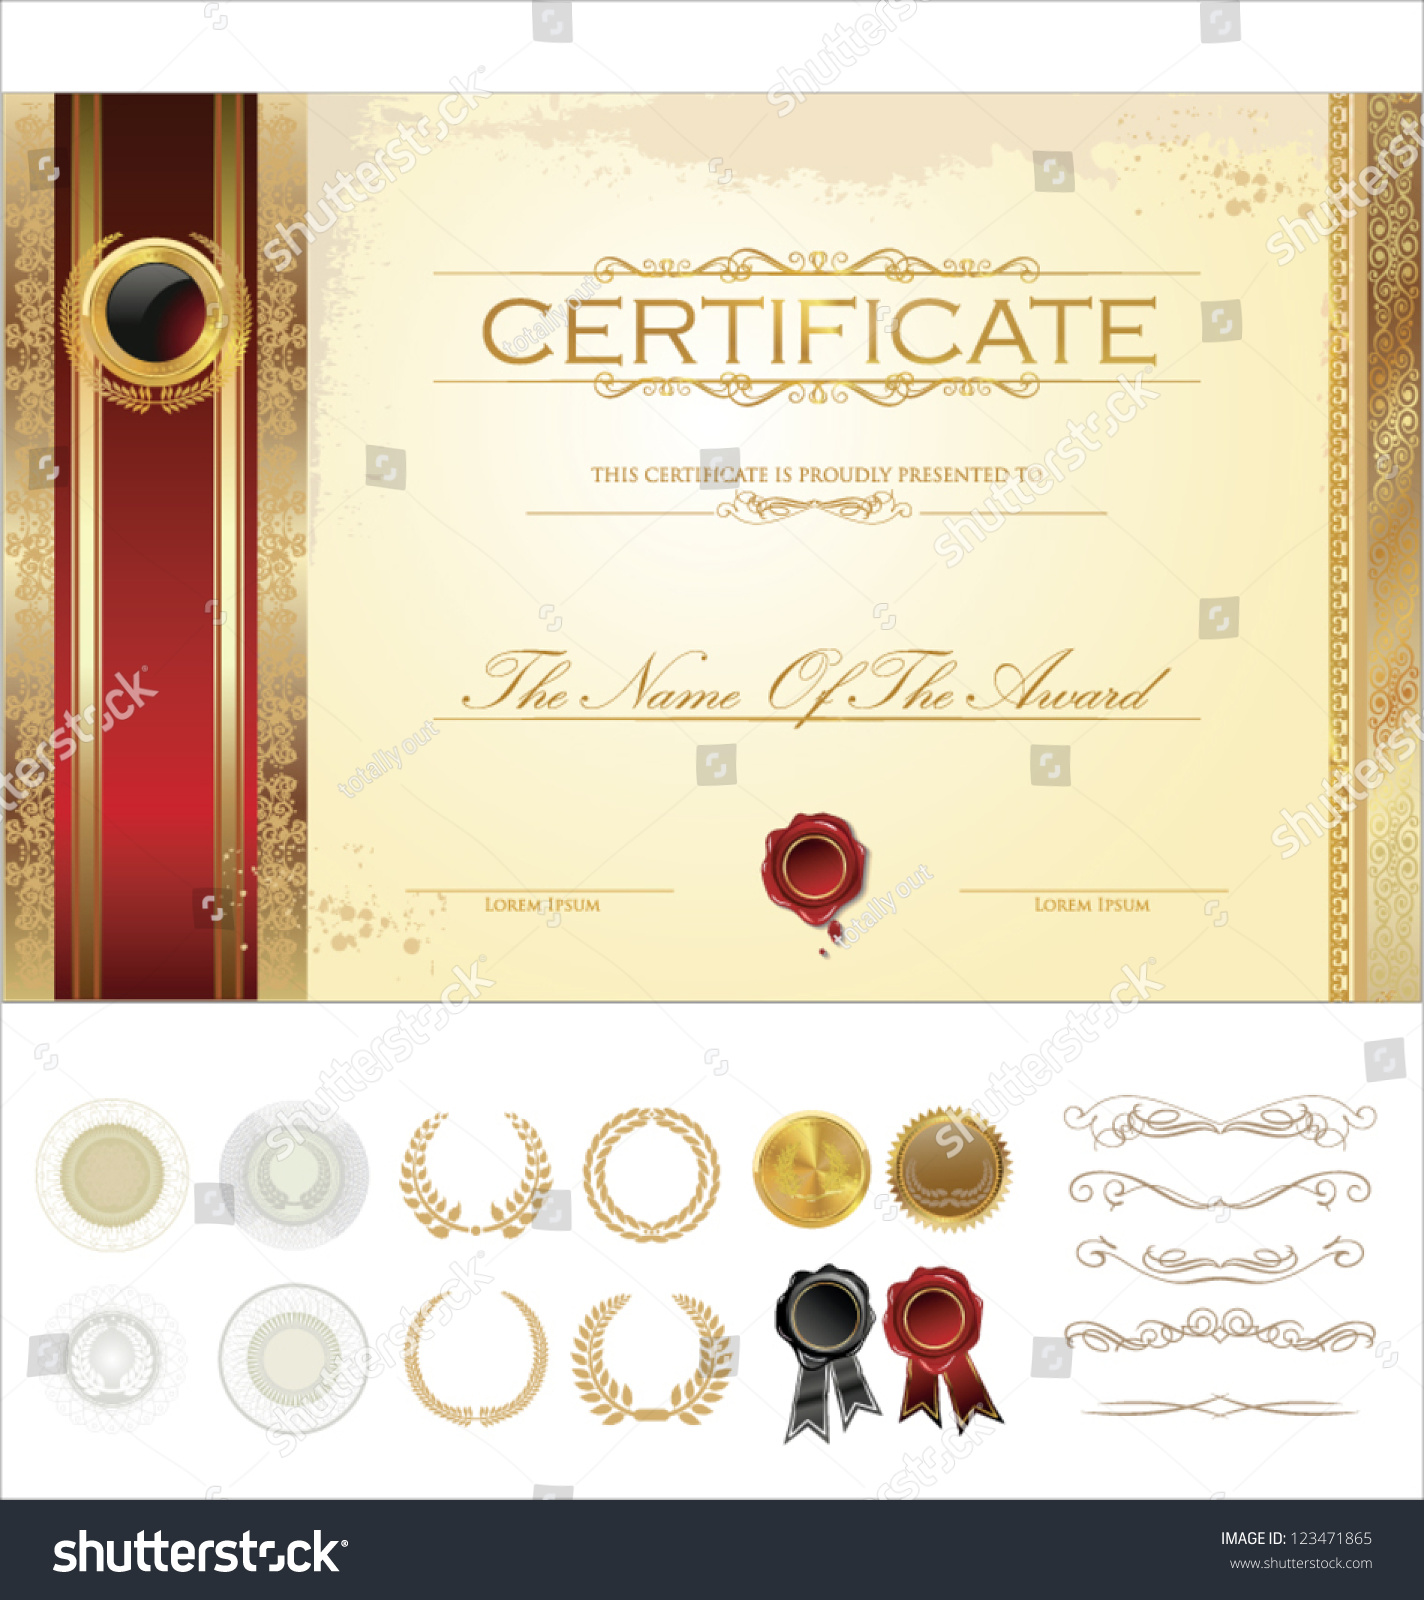 Luxury certificate template stock vector 123471865 shutterstock luxury certificate template xflitez Gallery